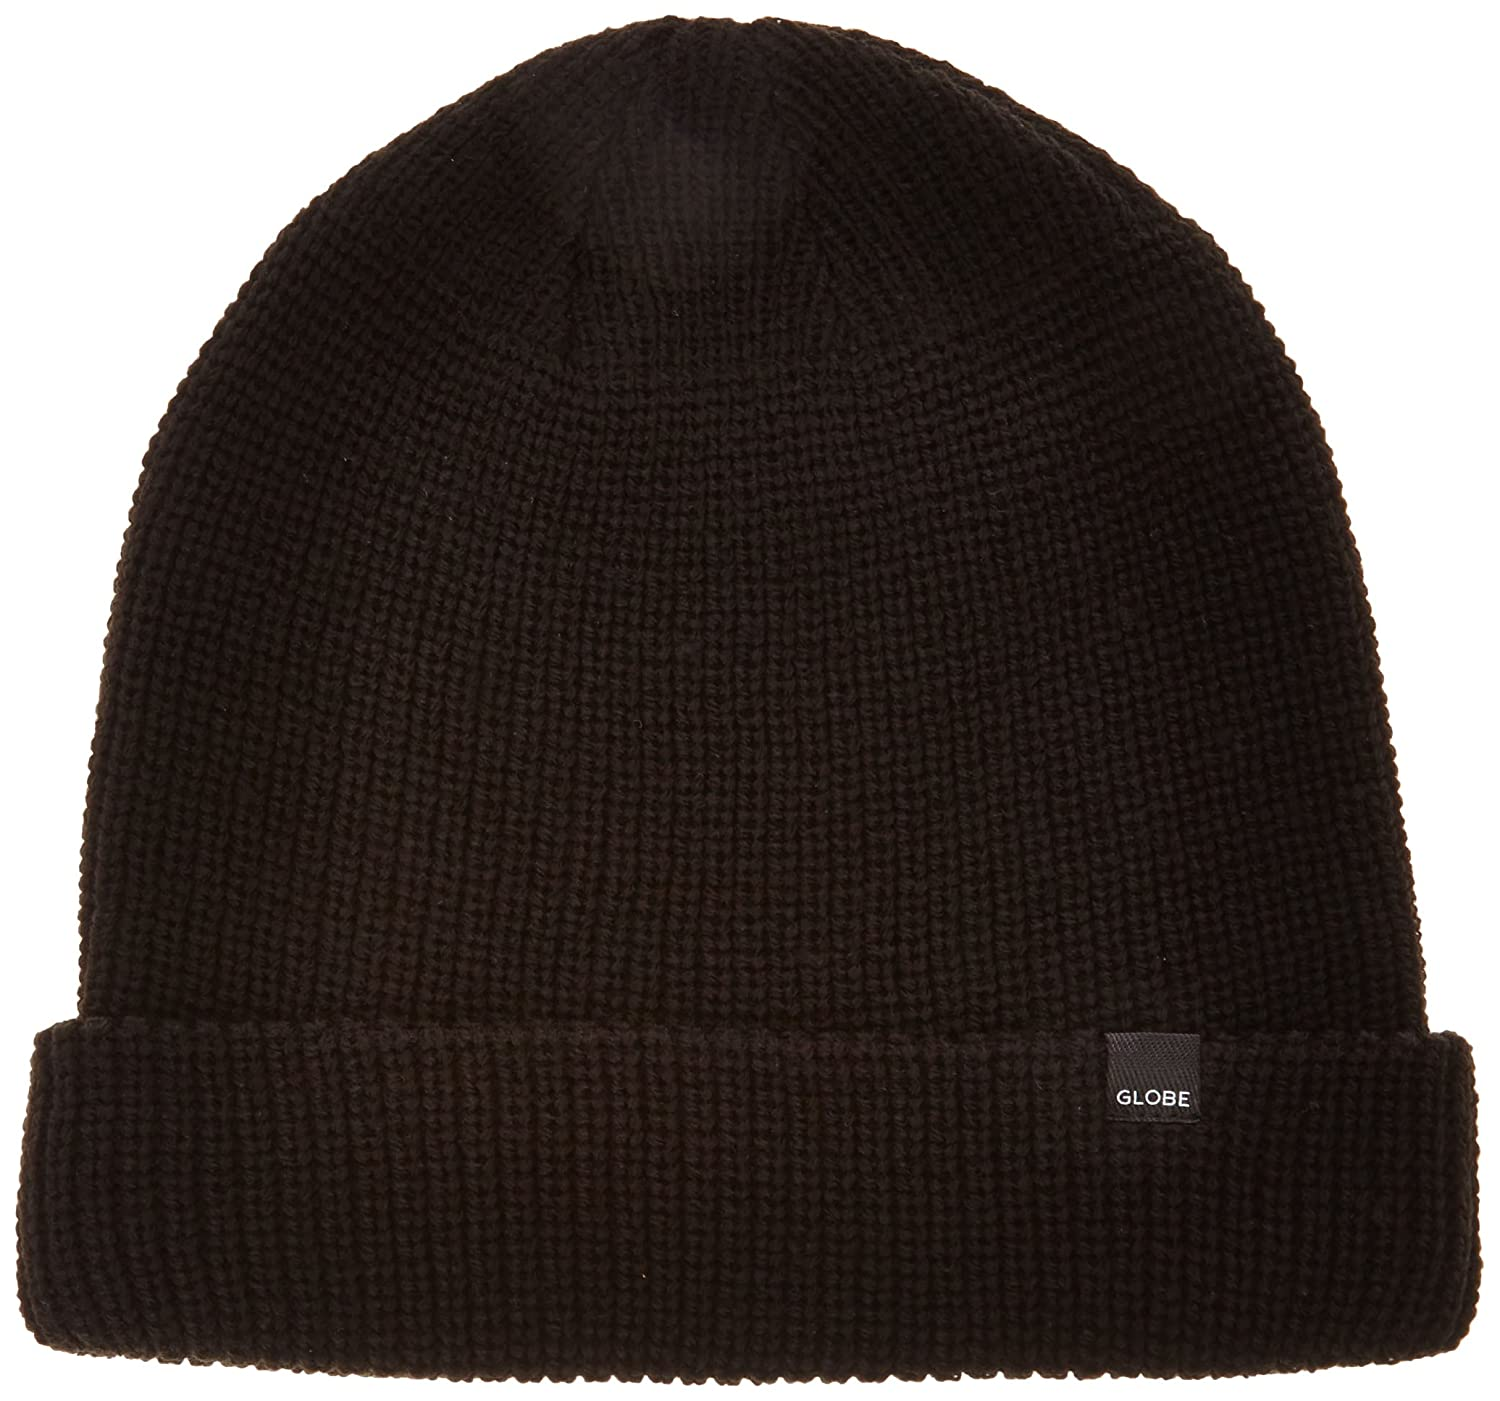 83393c8f4d6 Amazon.com  Globe Halladay Beanie - Black  Sports   Outdoors